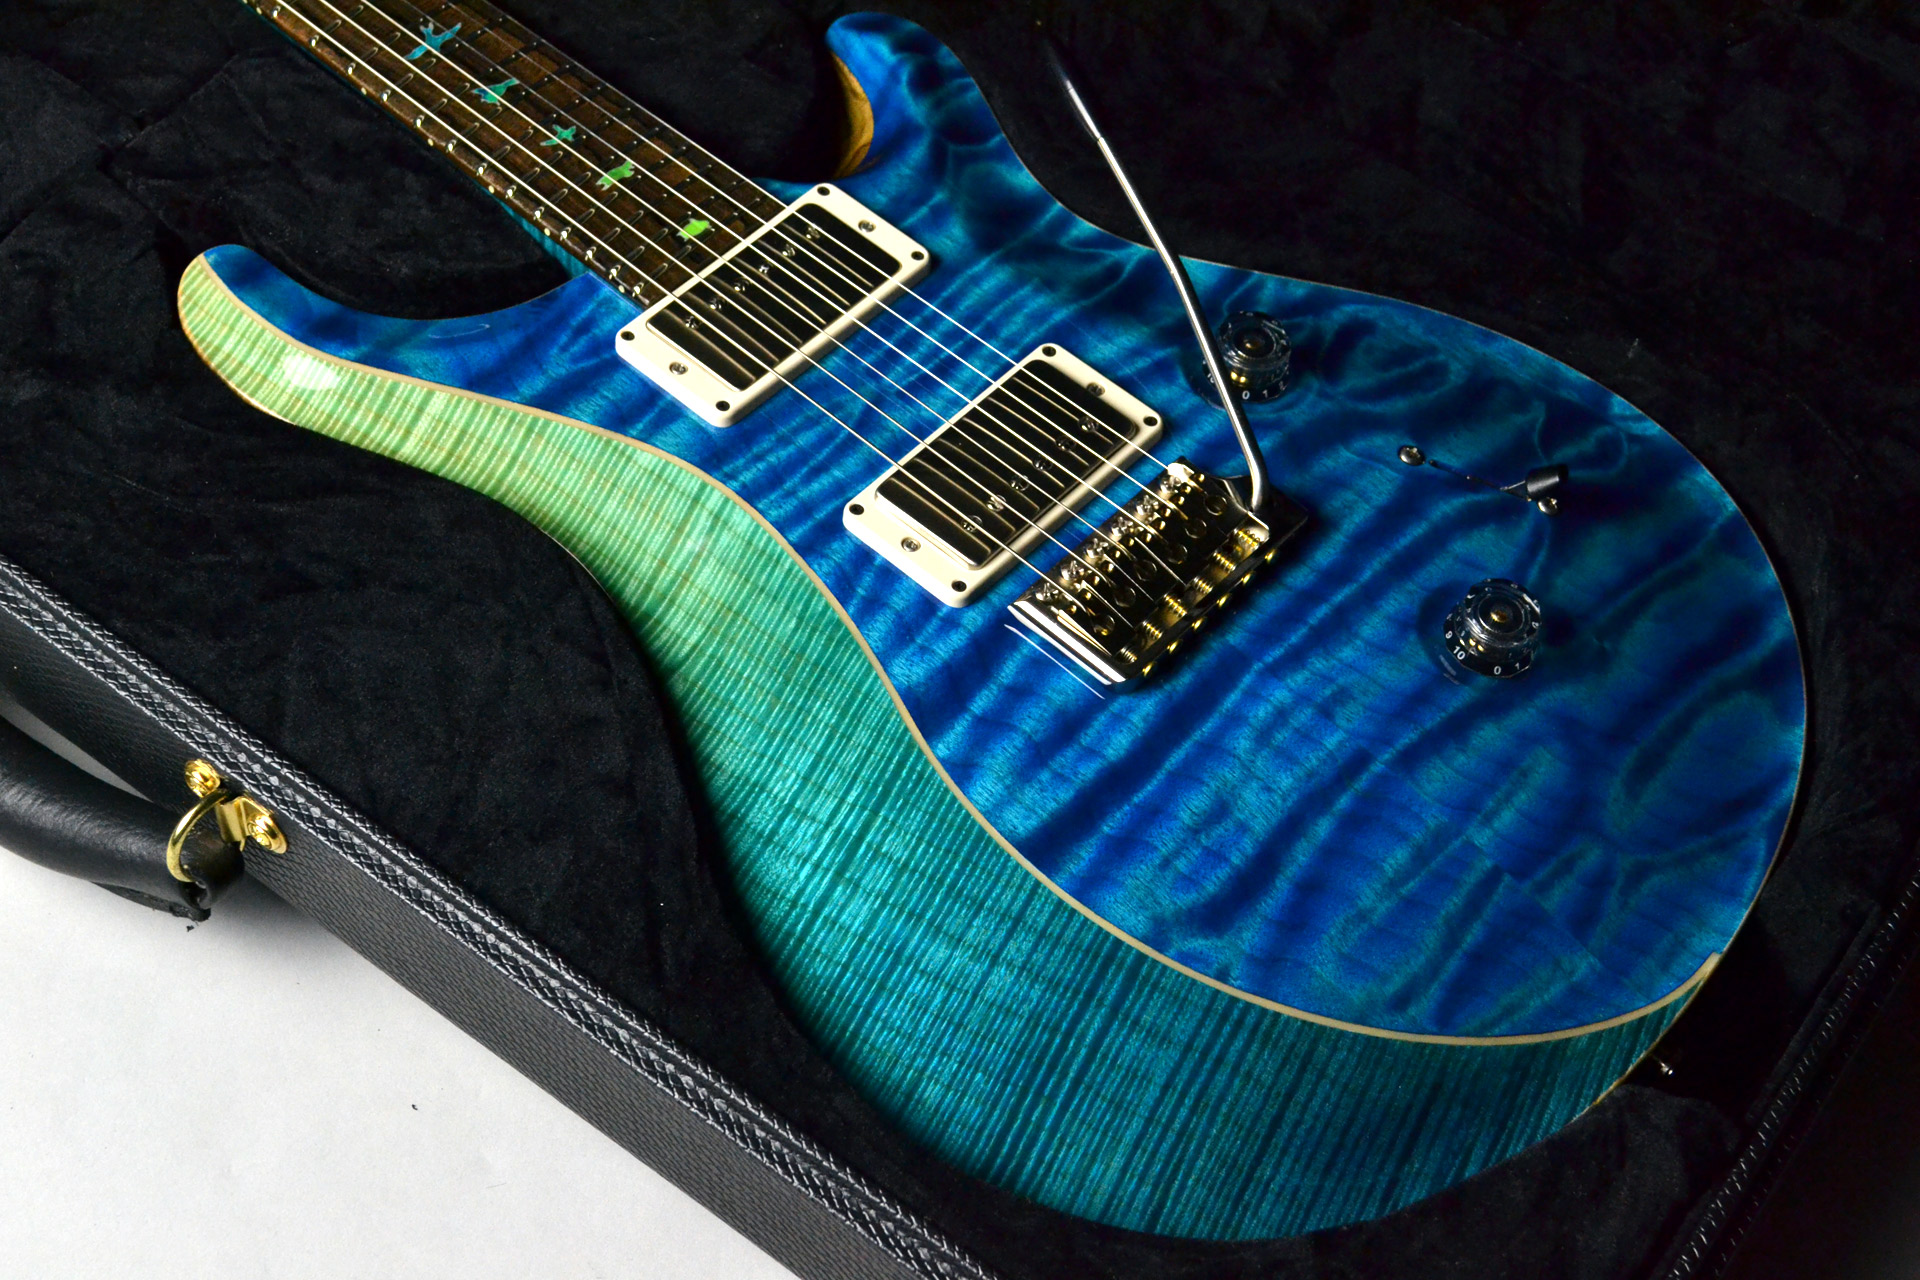 Private Stock #7659 Custom24 3-piece Top Aquamarine&Blue Fade,Luminlay Purflingのボディトップ-アップ画像